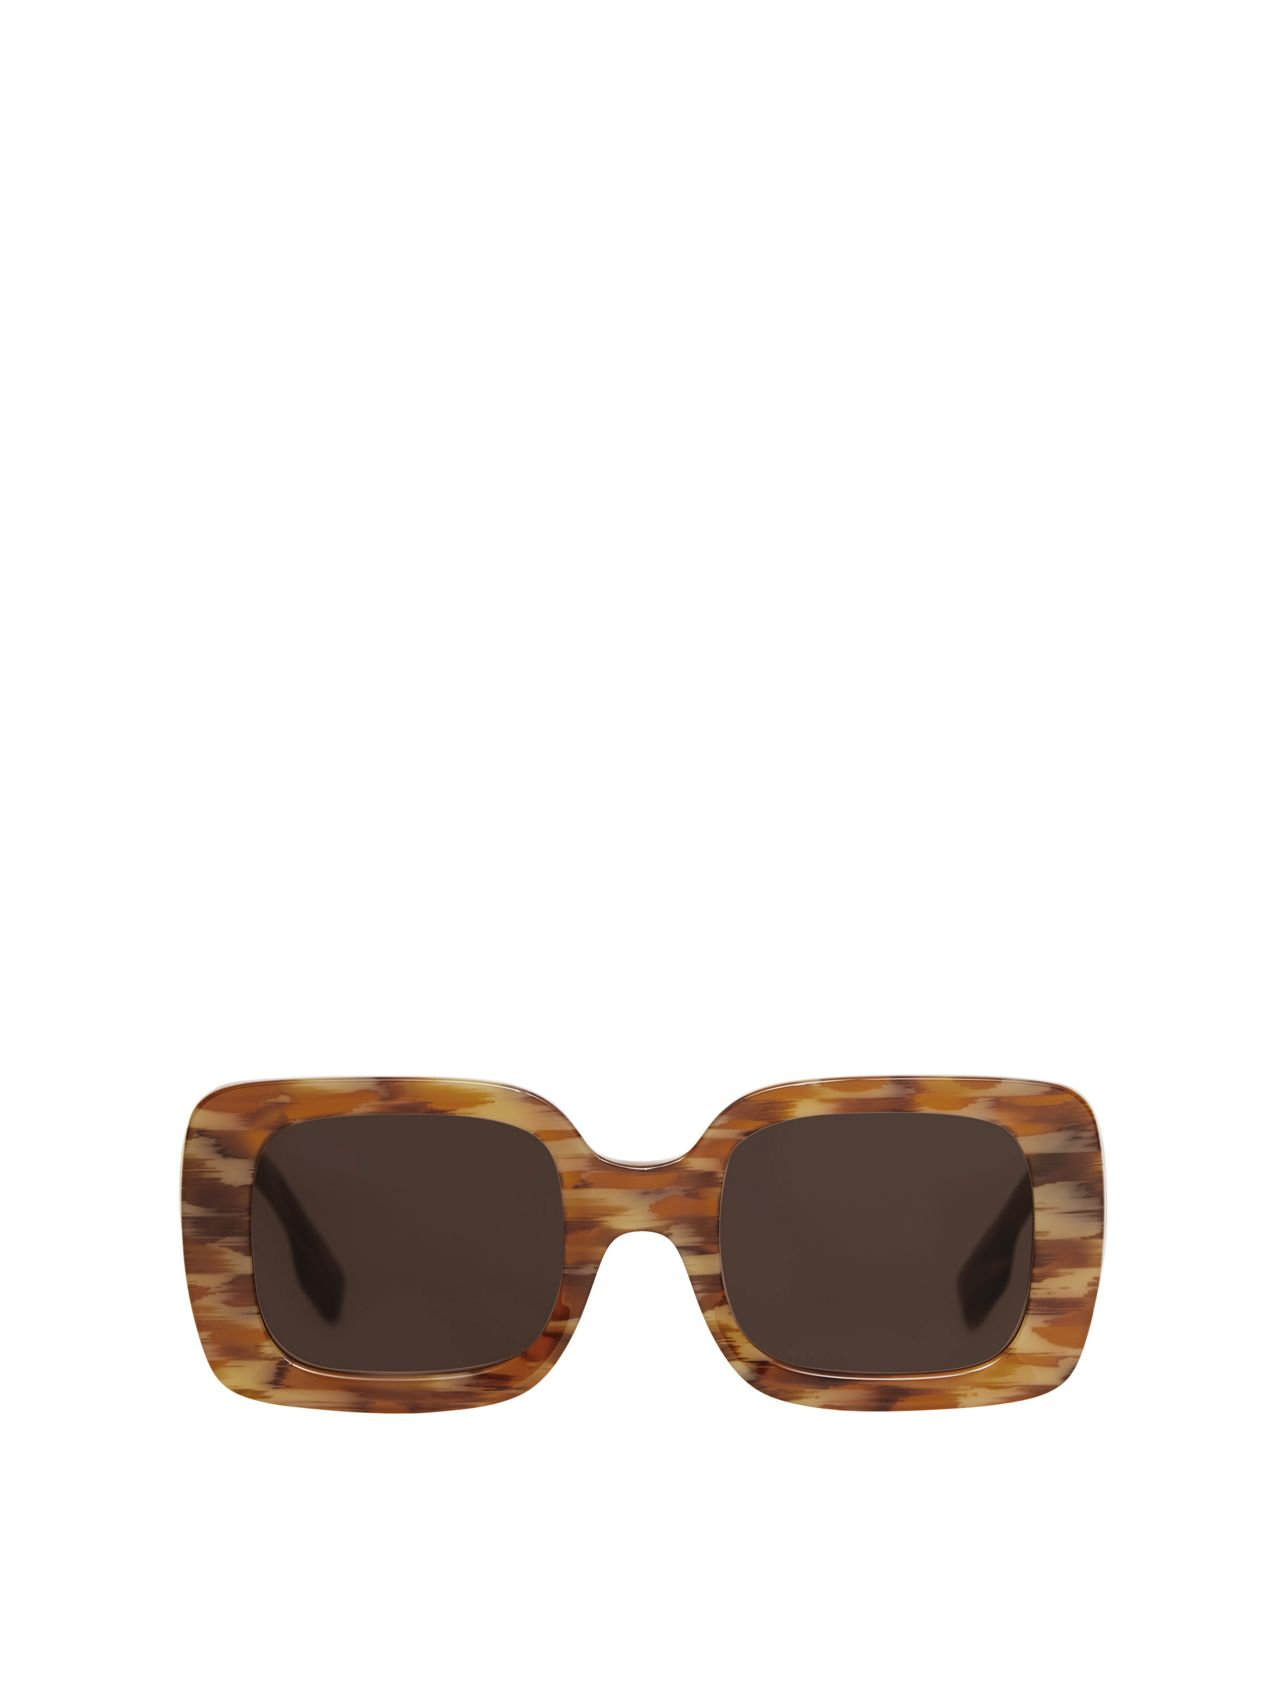 Monogram Motif Square Frame Sunglasses in Deer Print